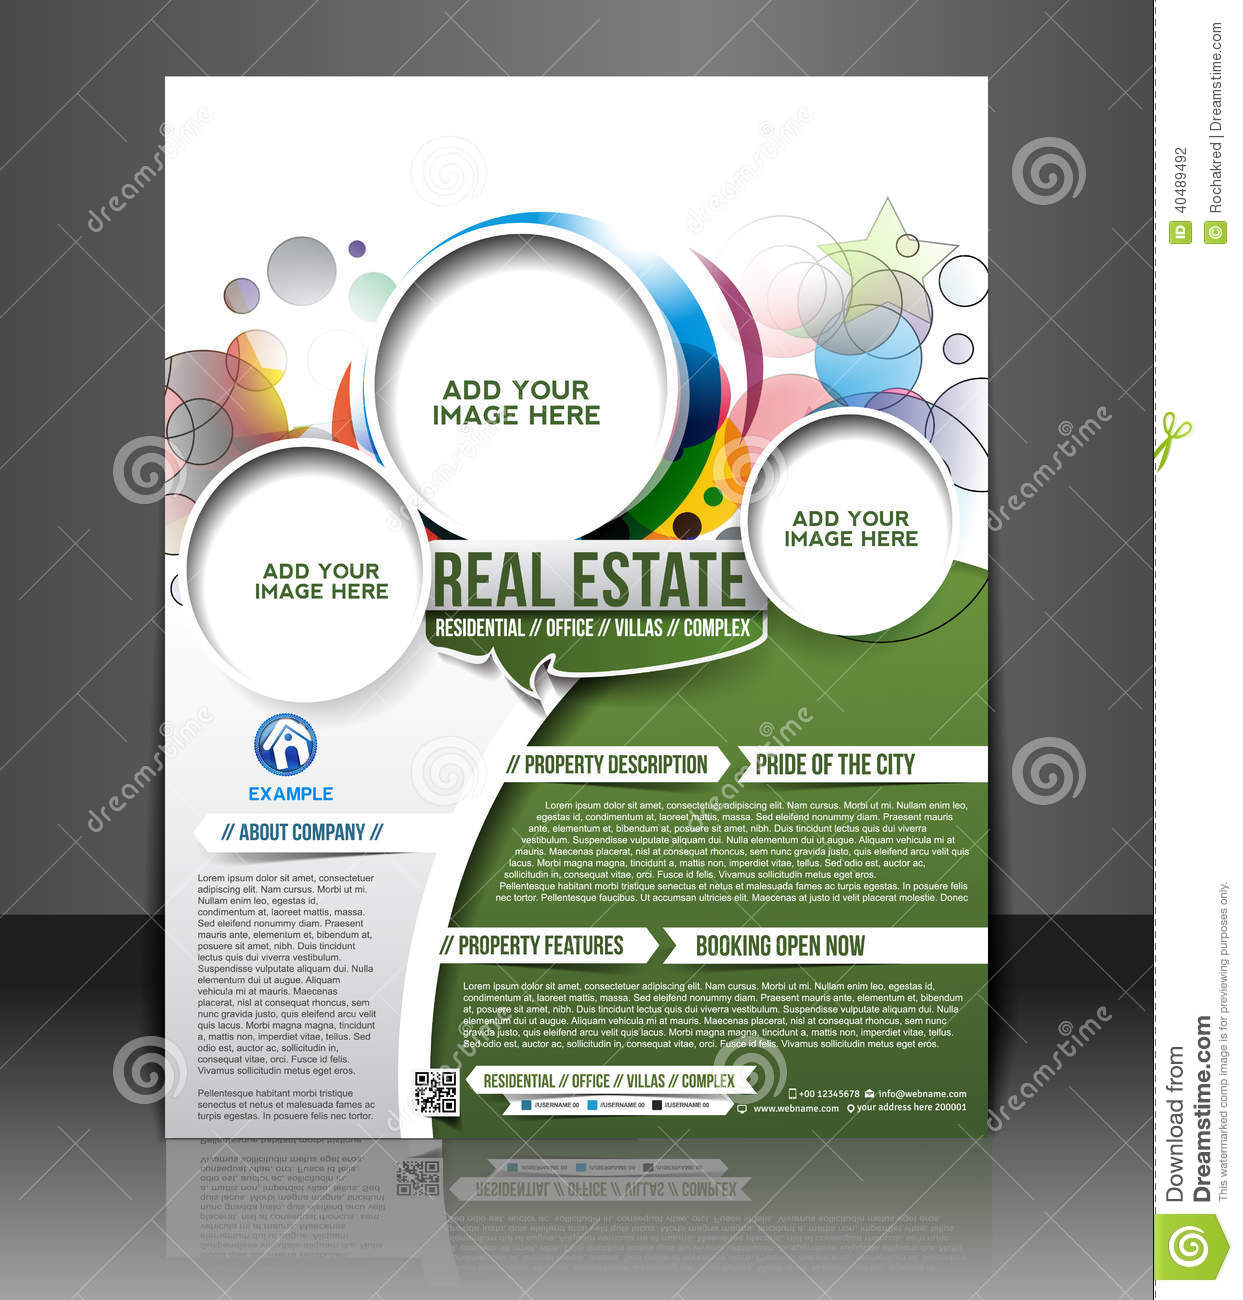 Real estate flyer design stock vector image 40489492 for Real estate craigslist template